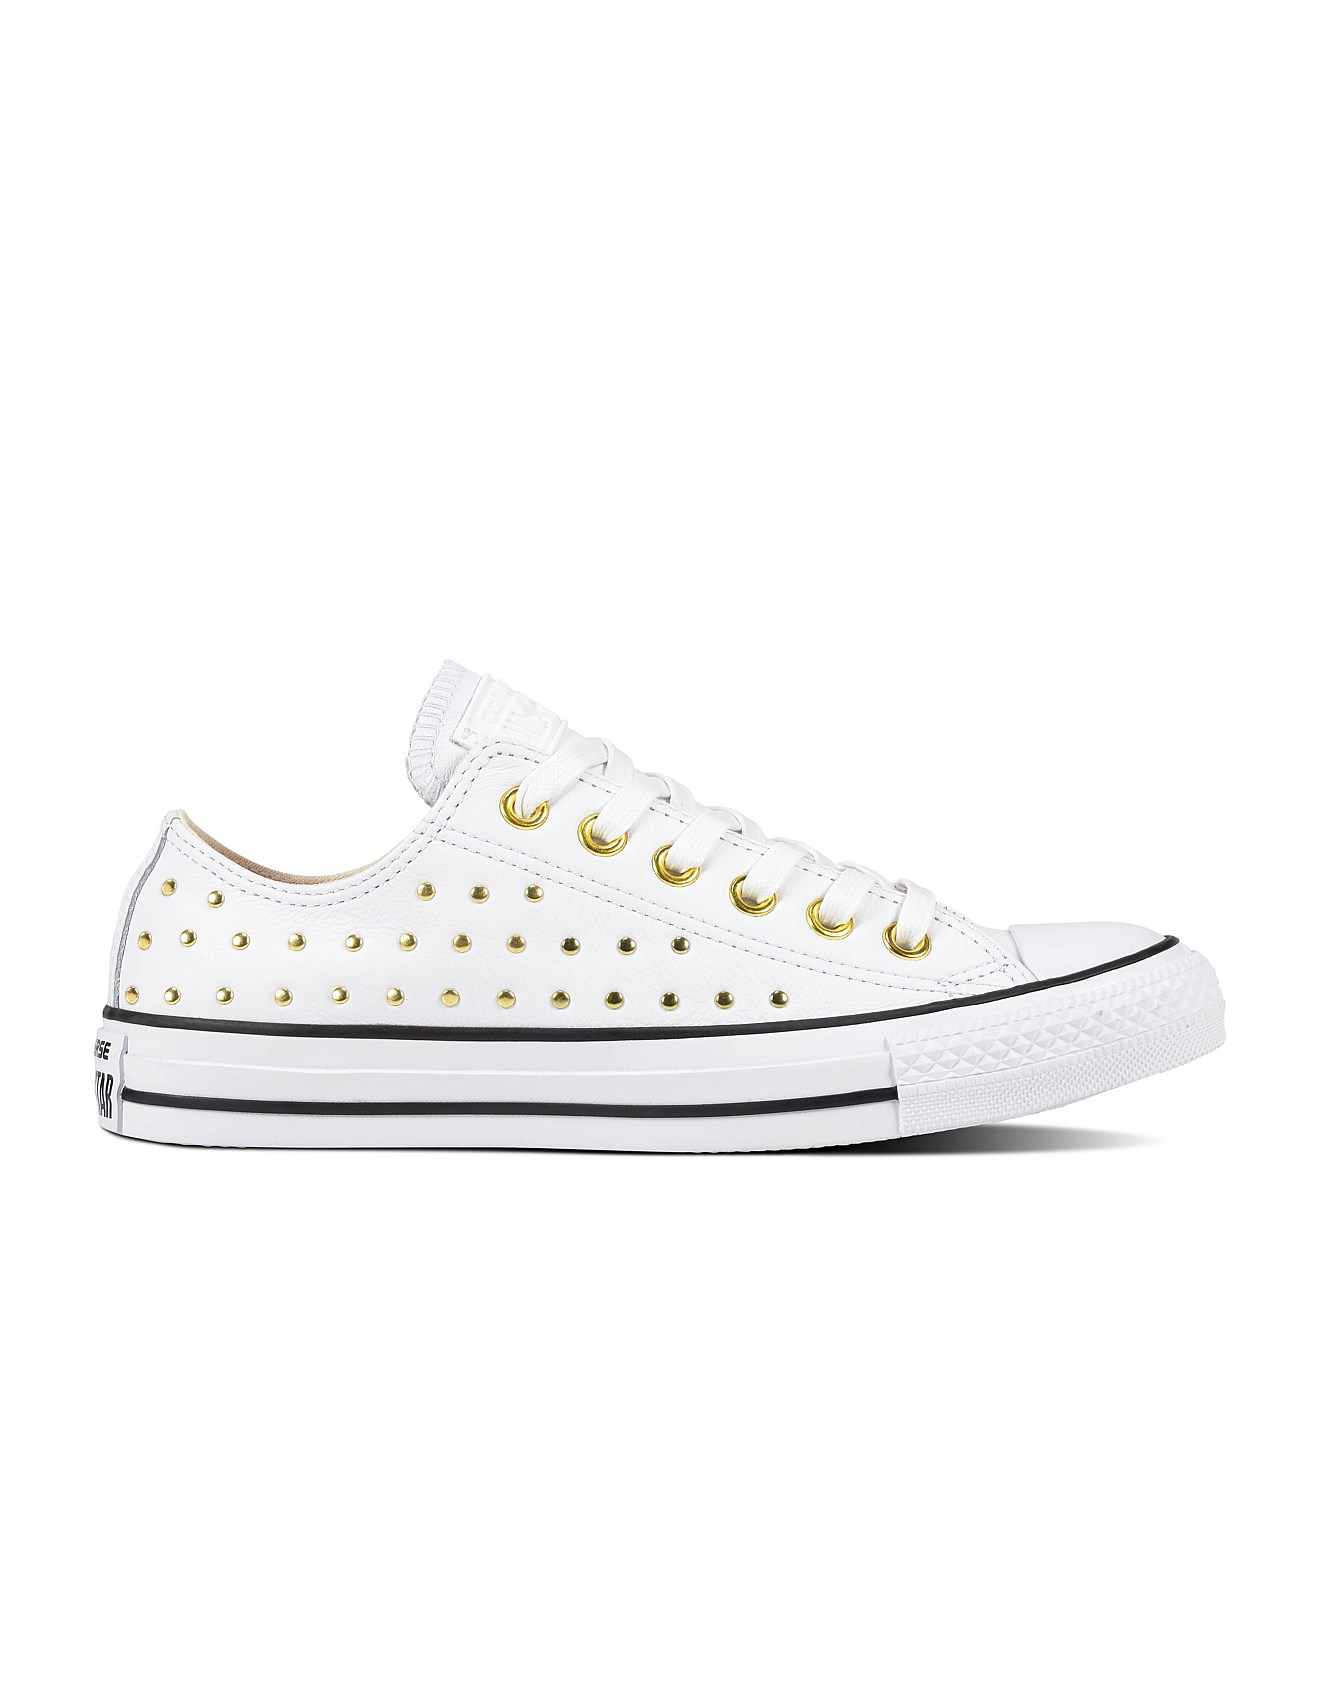 923ec828393121 Chuck Taylor All Star Leather Stud - Ox Sneaker